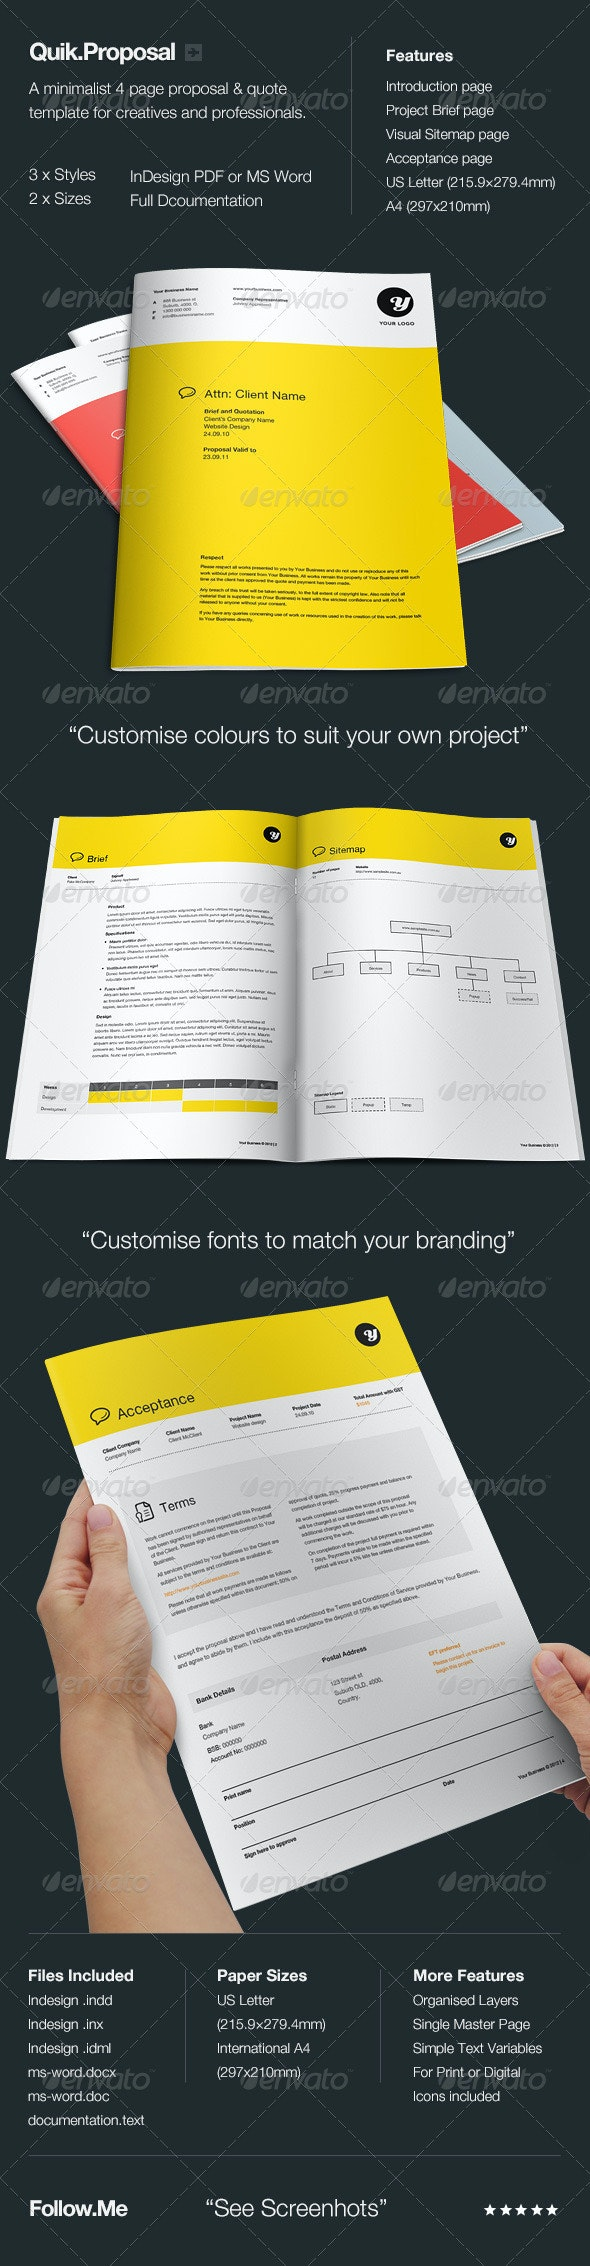 Quik.Proposal - Proposals & Invoices Stationery